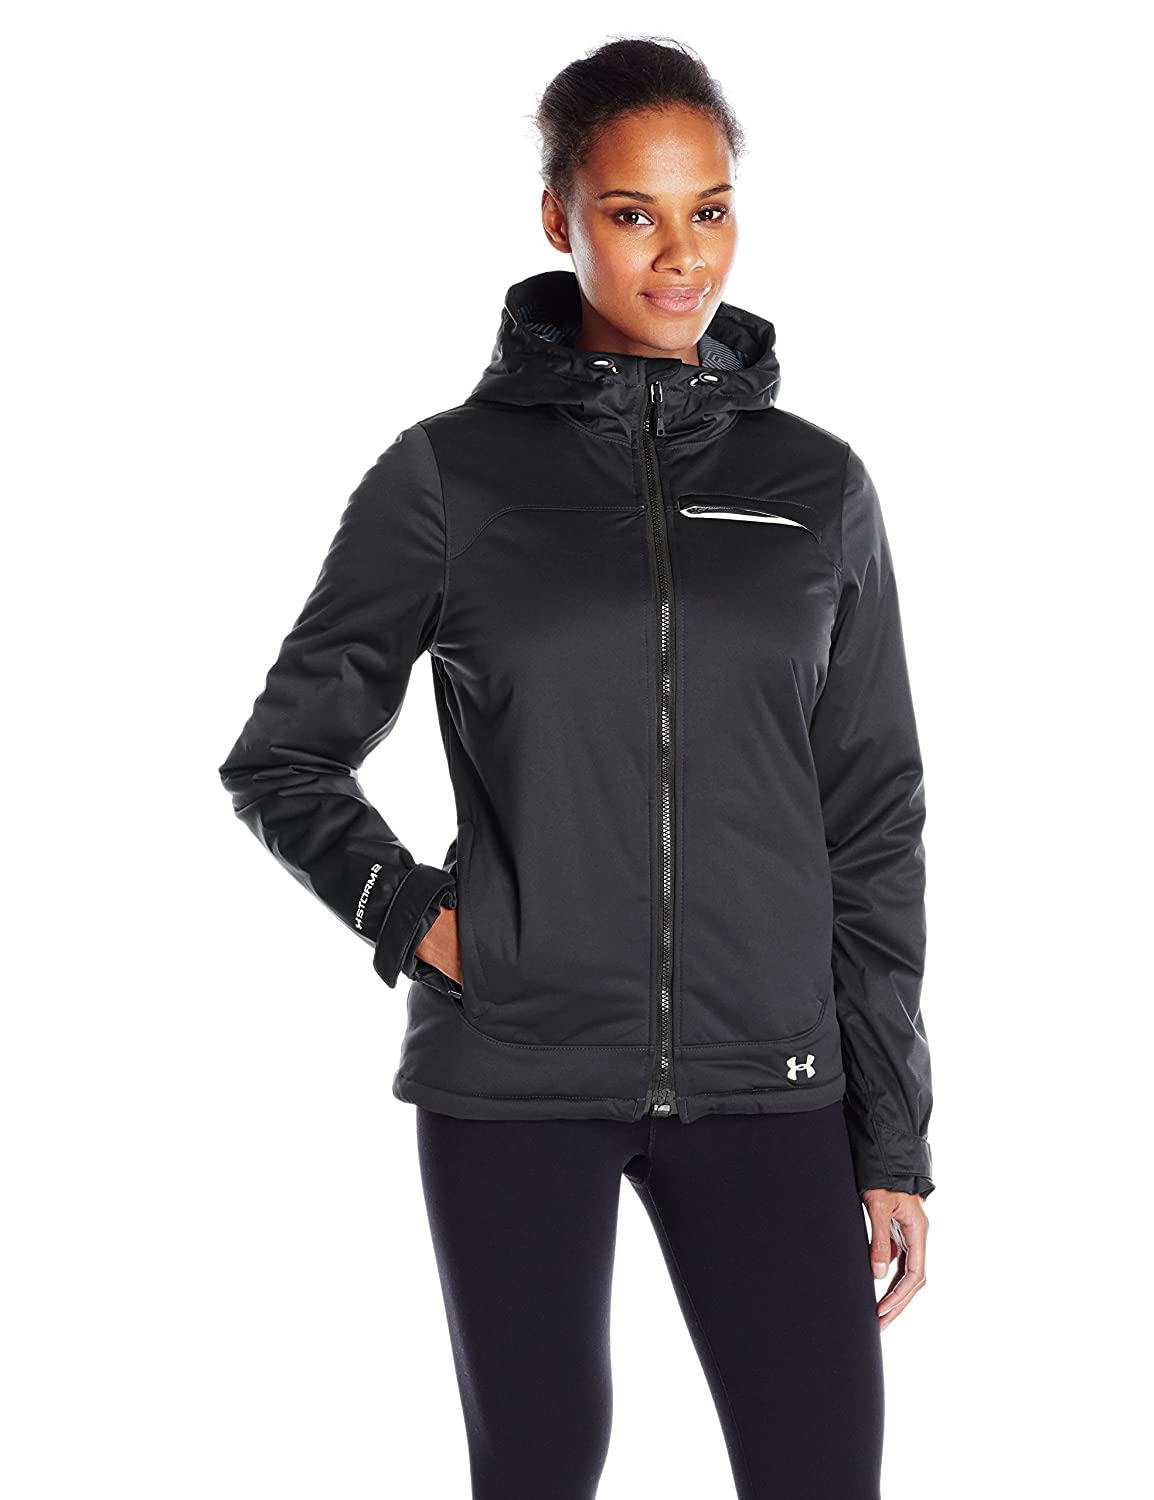 3bbc54f685f33 Amazon.com  Under Armour Women s Sienna 3-in-1 Jacket  Sports   Outdoors